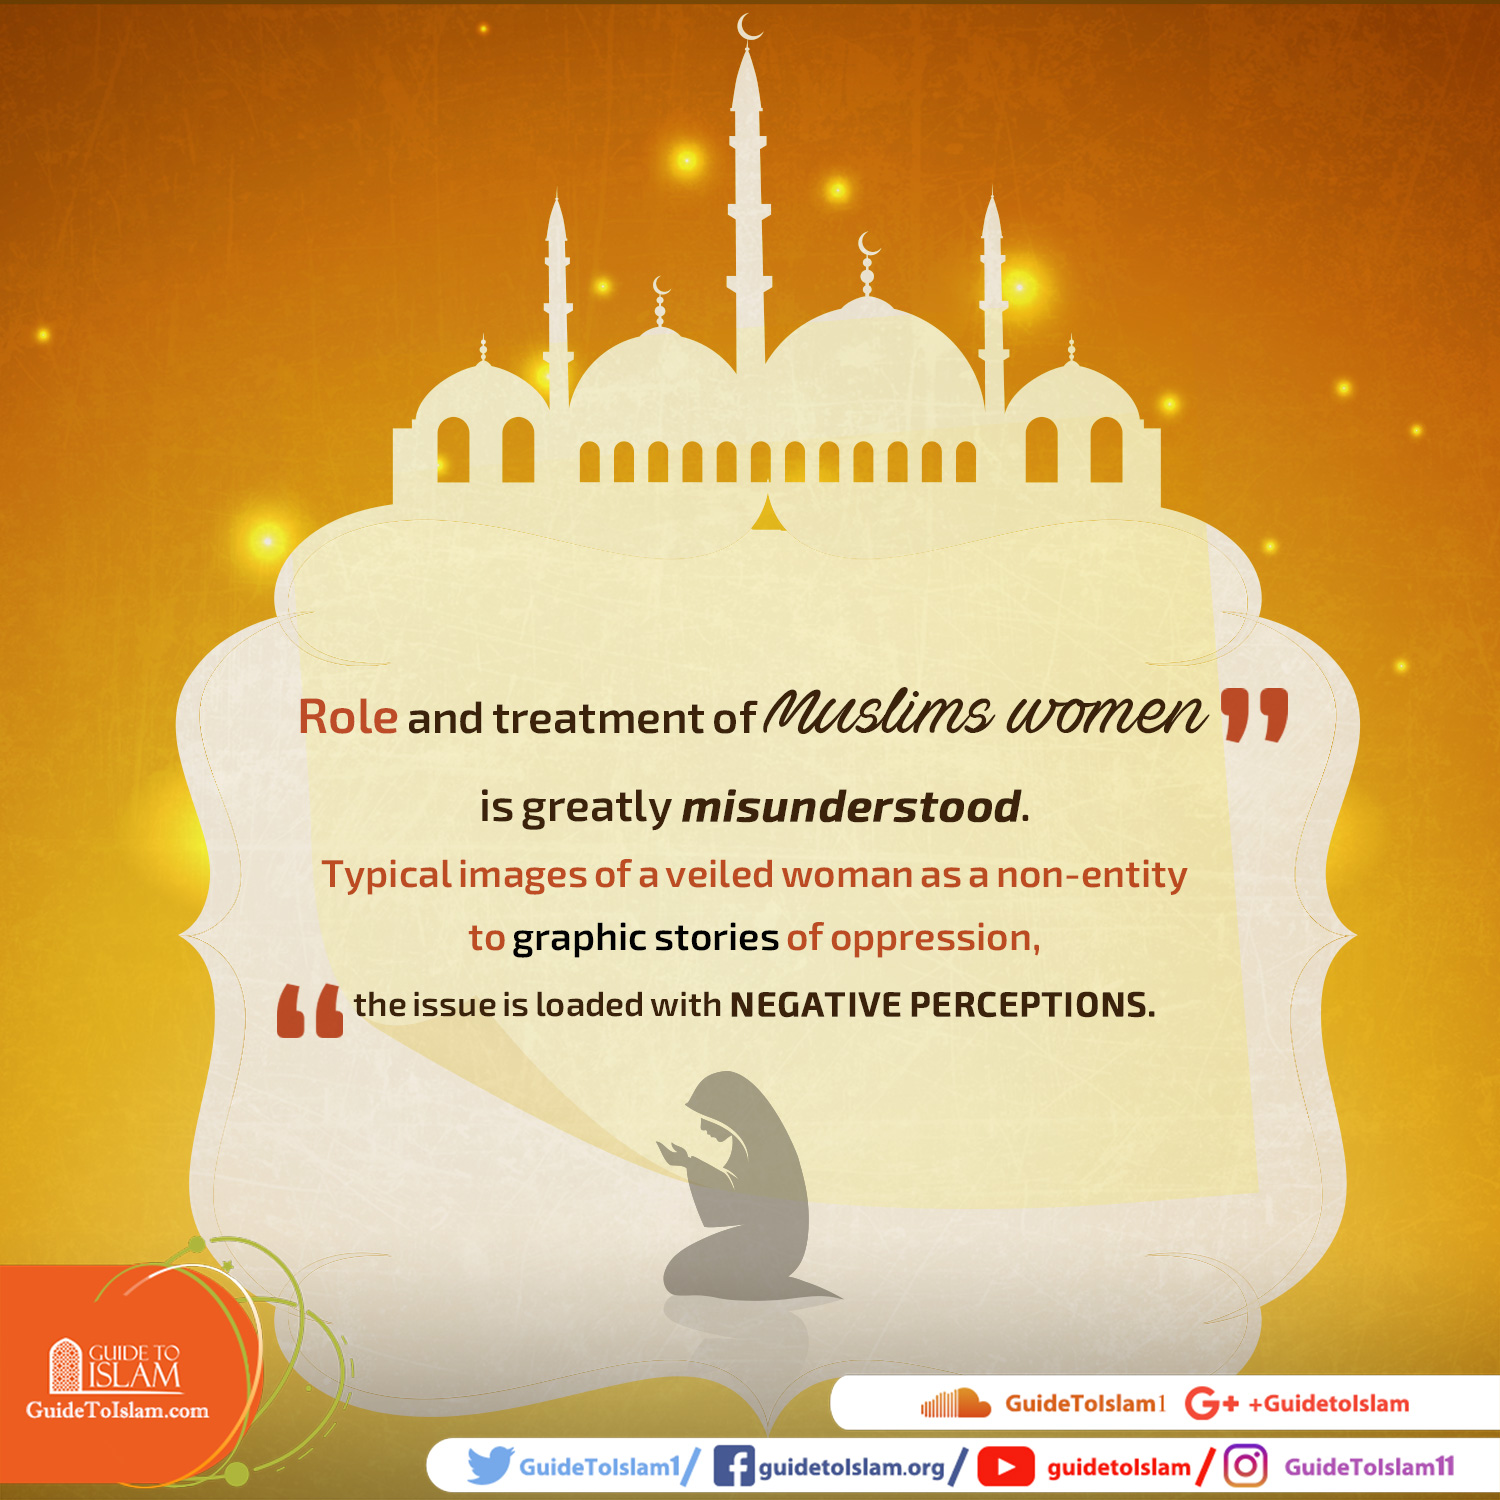 Role and treatment of Muslims women